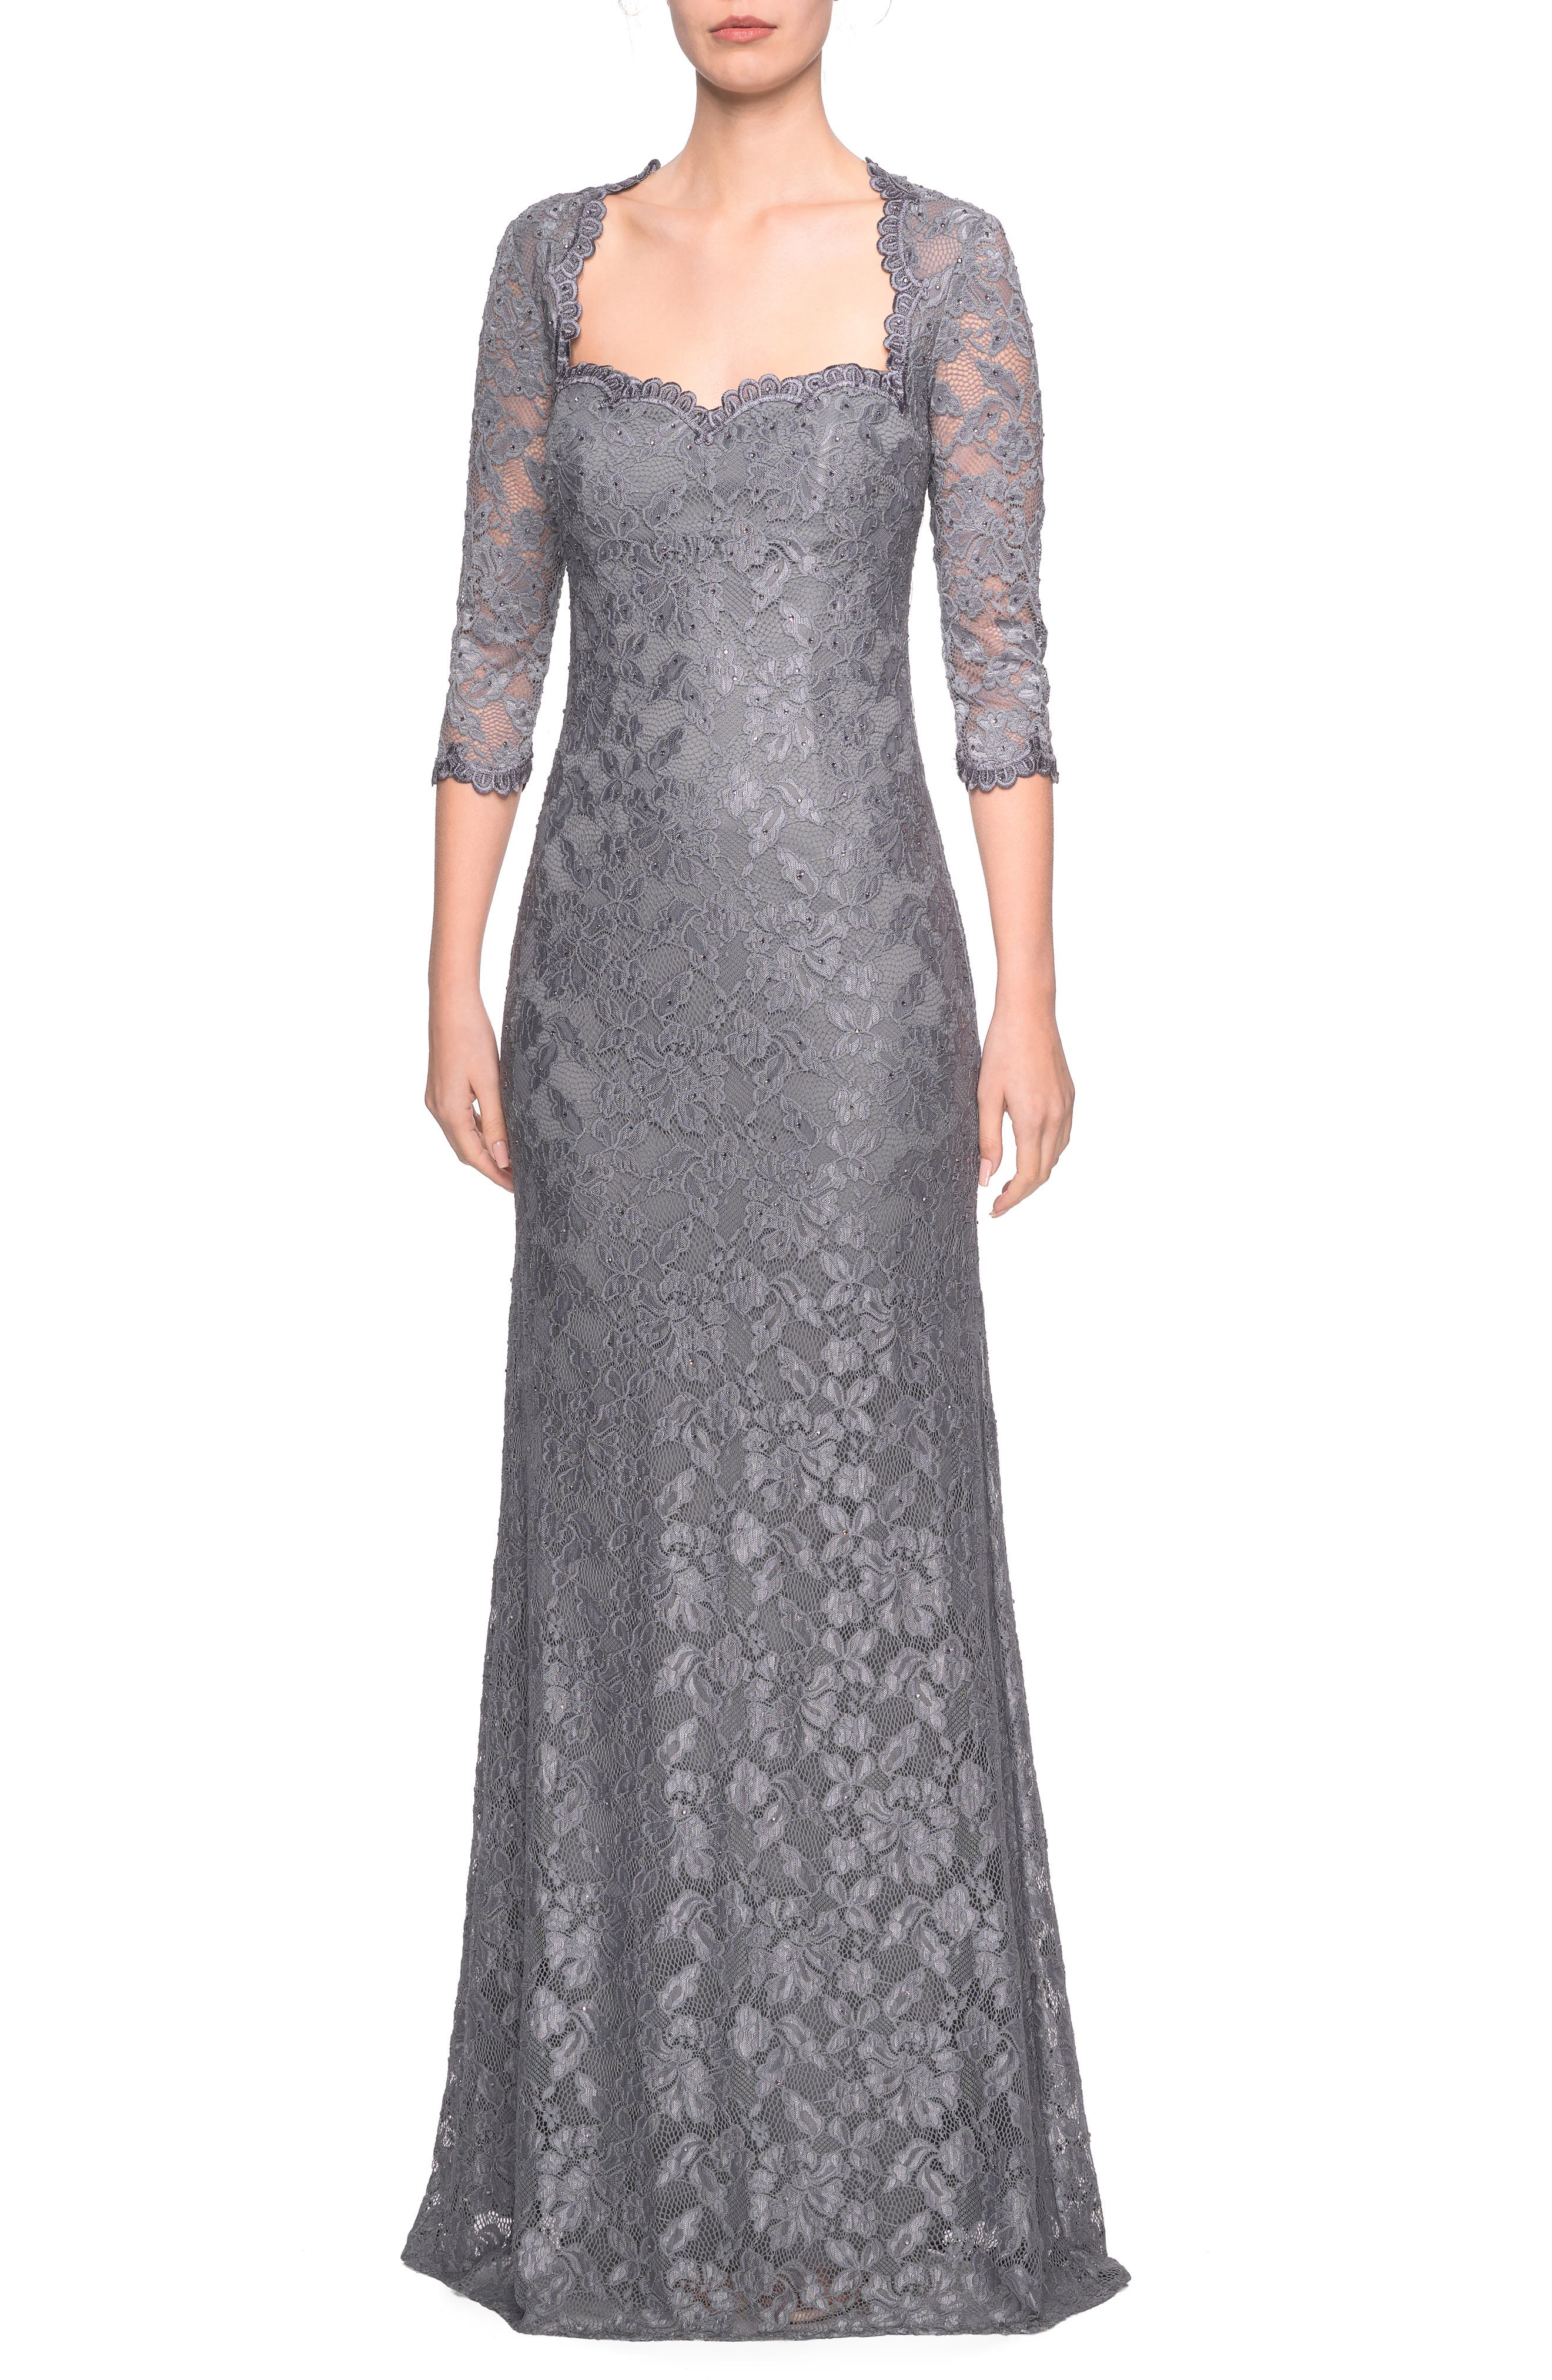 LA FEMME,                             Lace Column Gown,                             Main thumbnail 1, color,                             PLATINUM